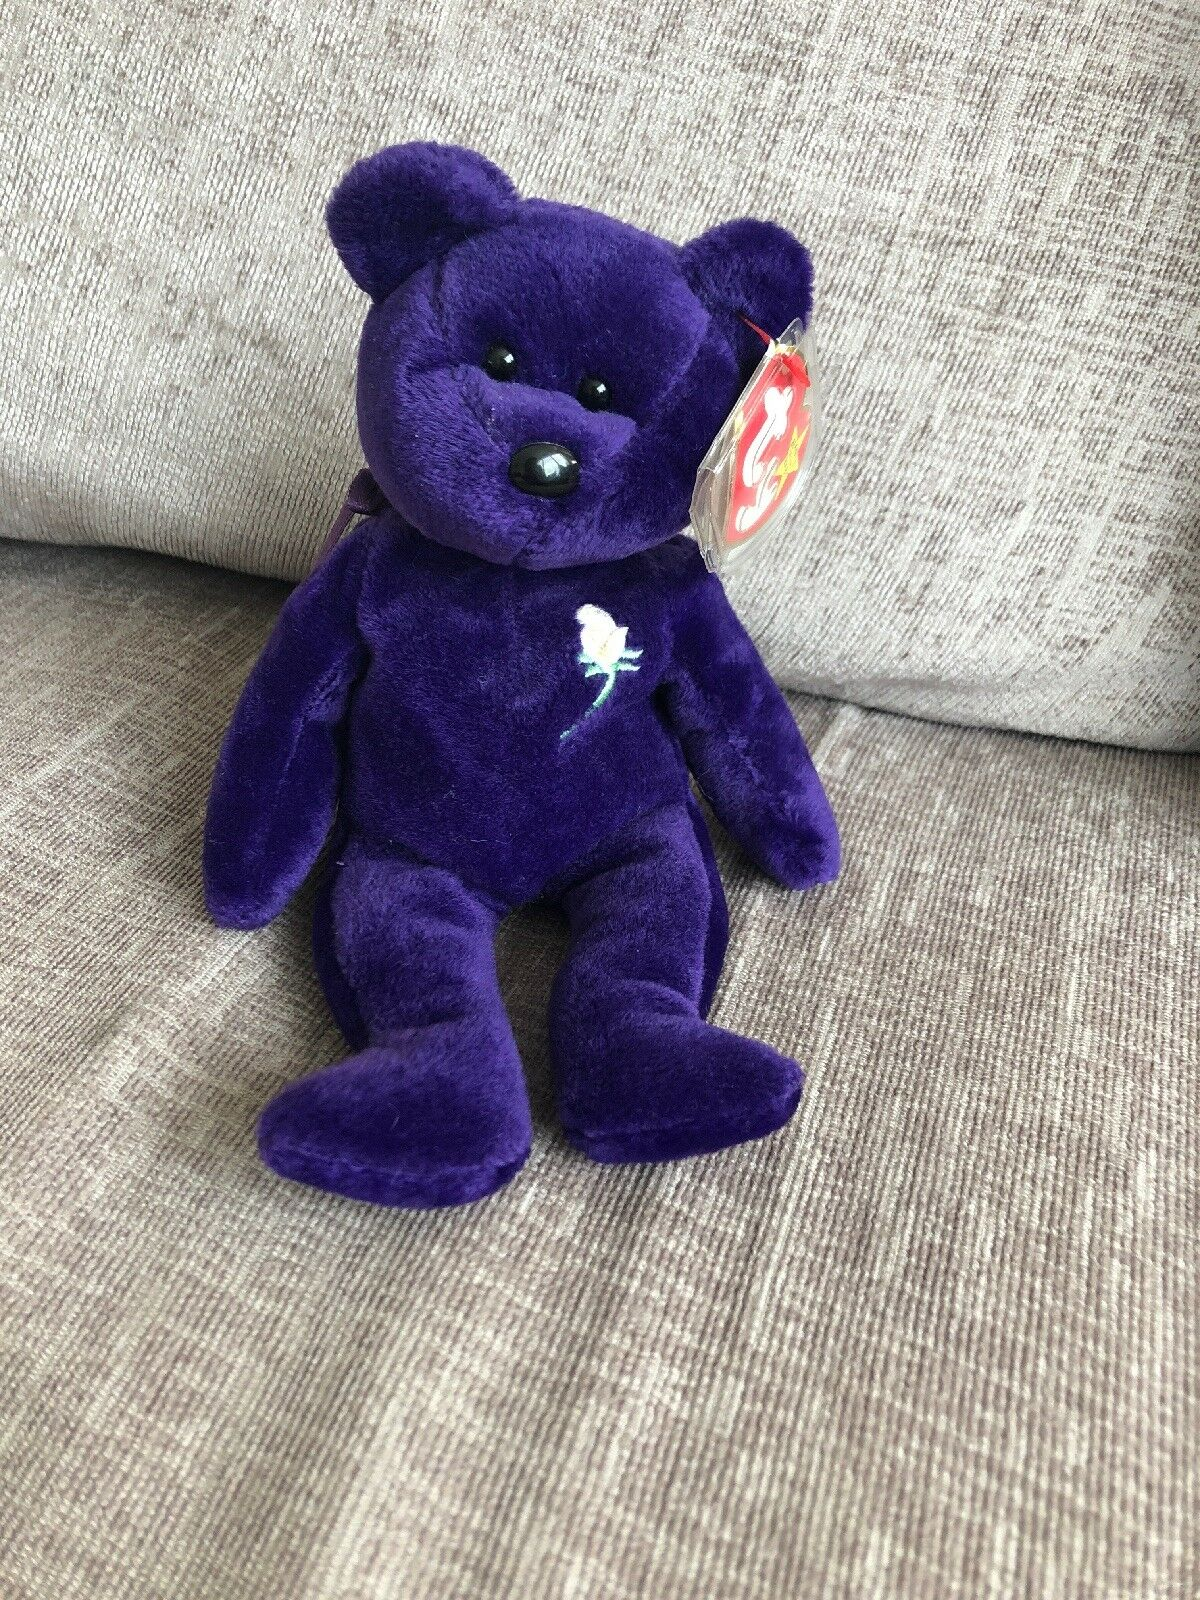 Ty Beanie Baby Babies 'Princess'  1997 Princess Diana Memorial Fund Bear